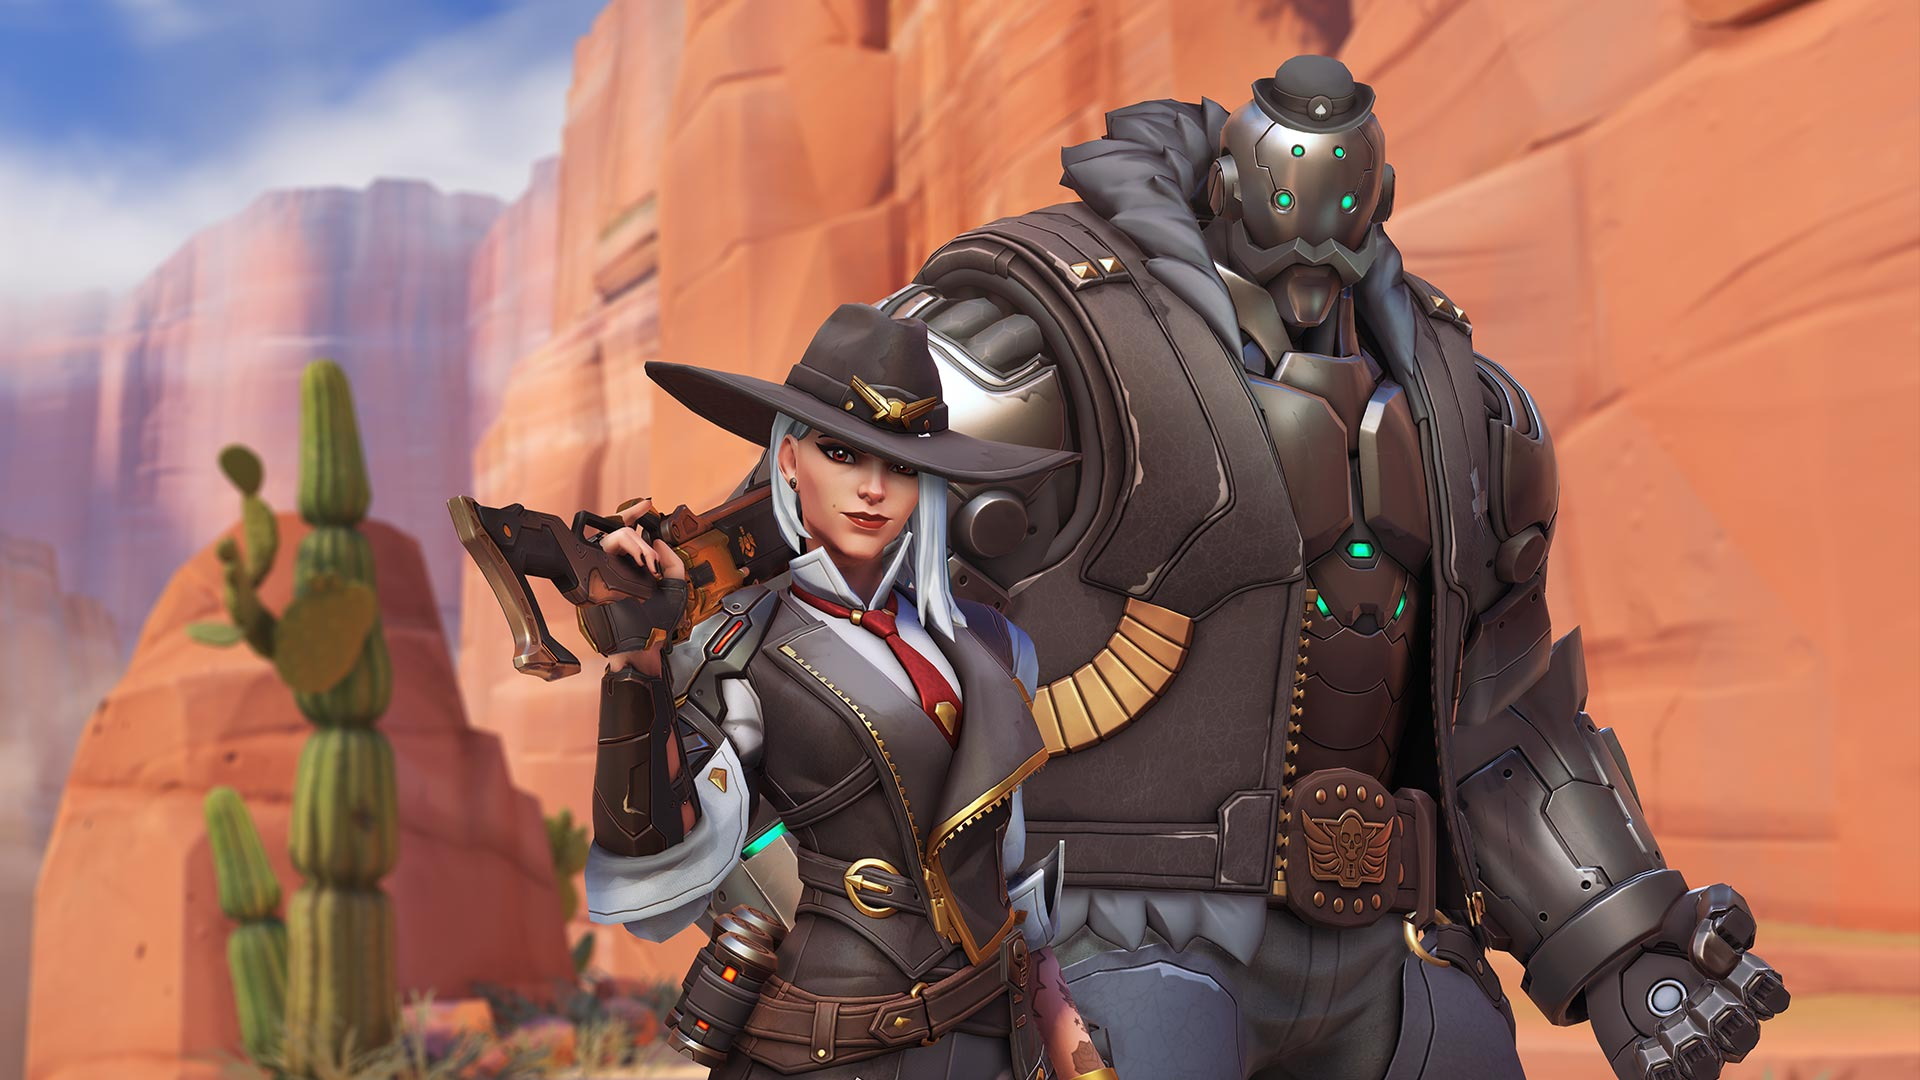 The new Overwatch hero is Ashe: here are her abilities